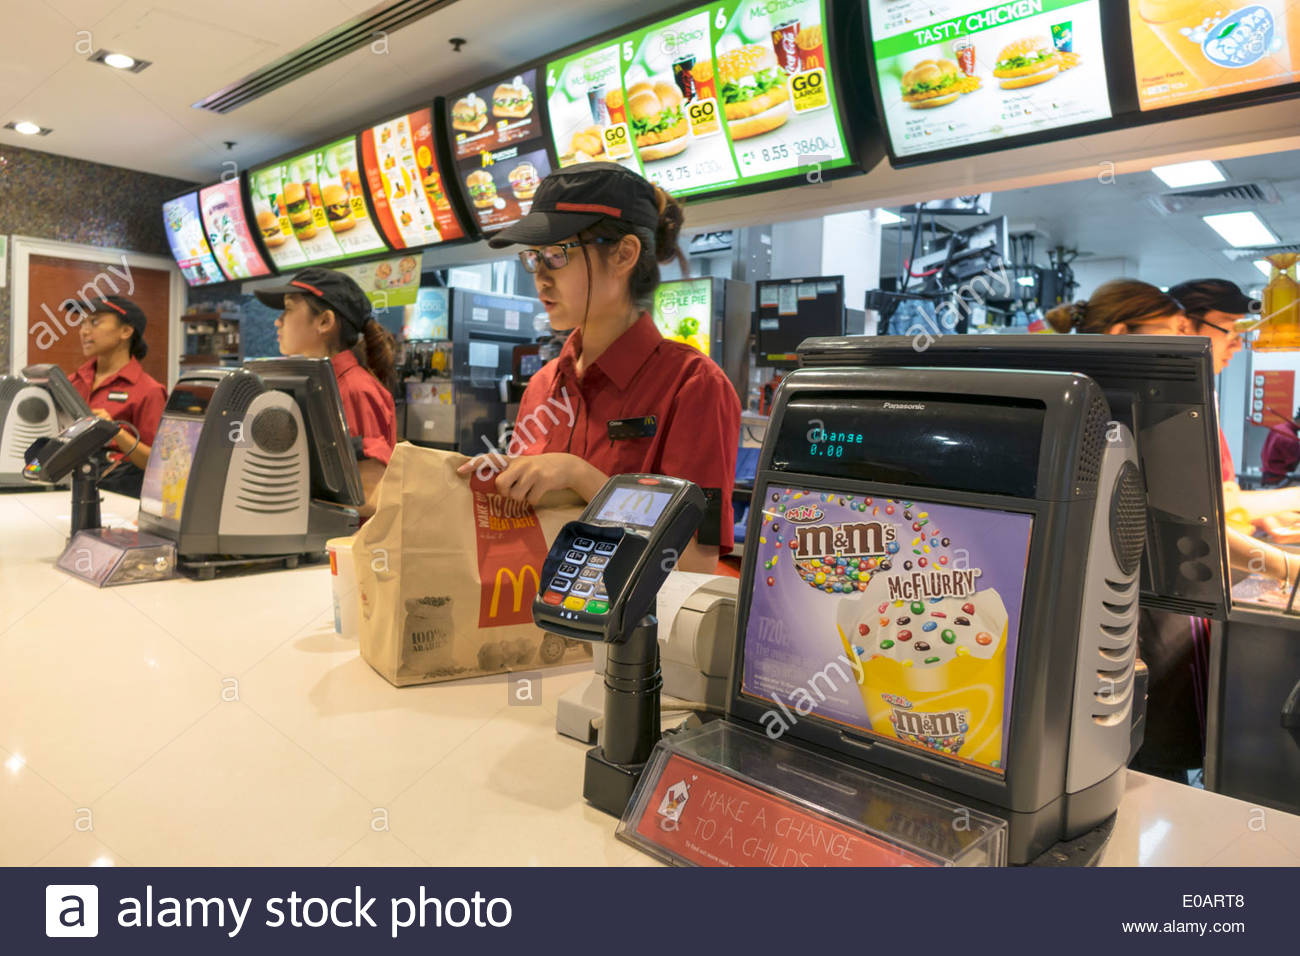 Sydney Australia NSW New South Wales CBD Central Business District Circular Quay McDonald's restaurant fast food counter Asian woman job uniform emplo - Stock Image